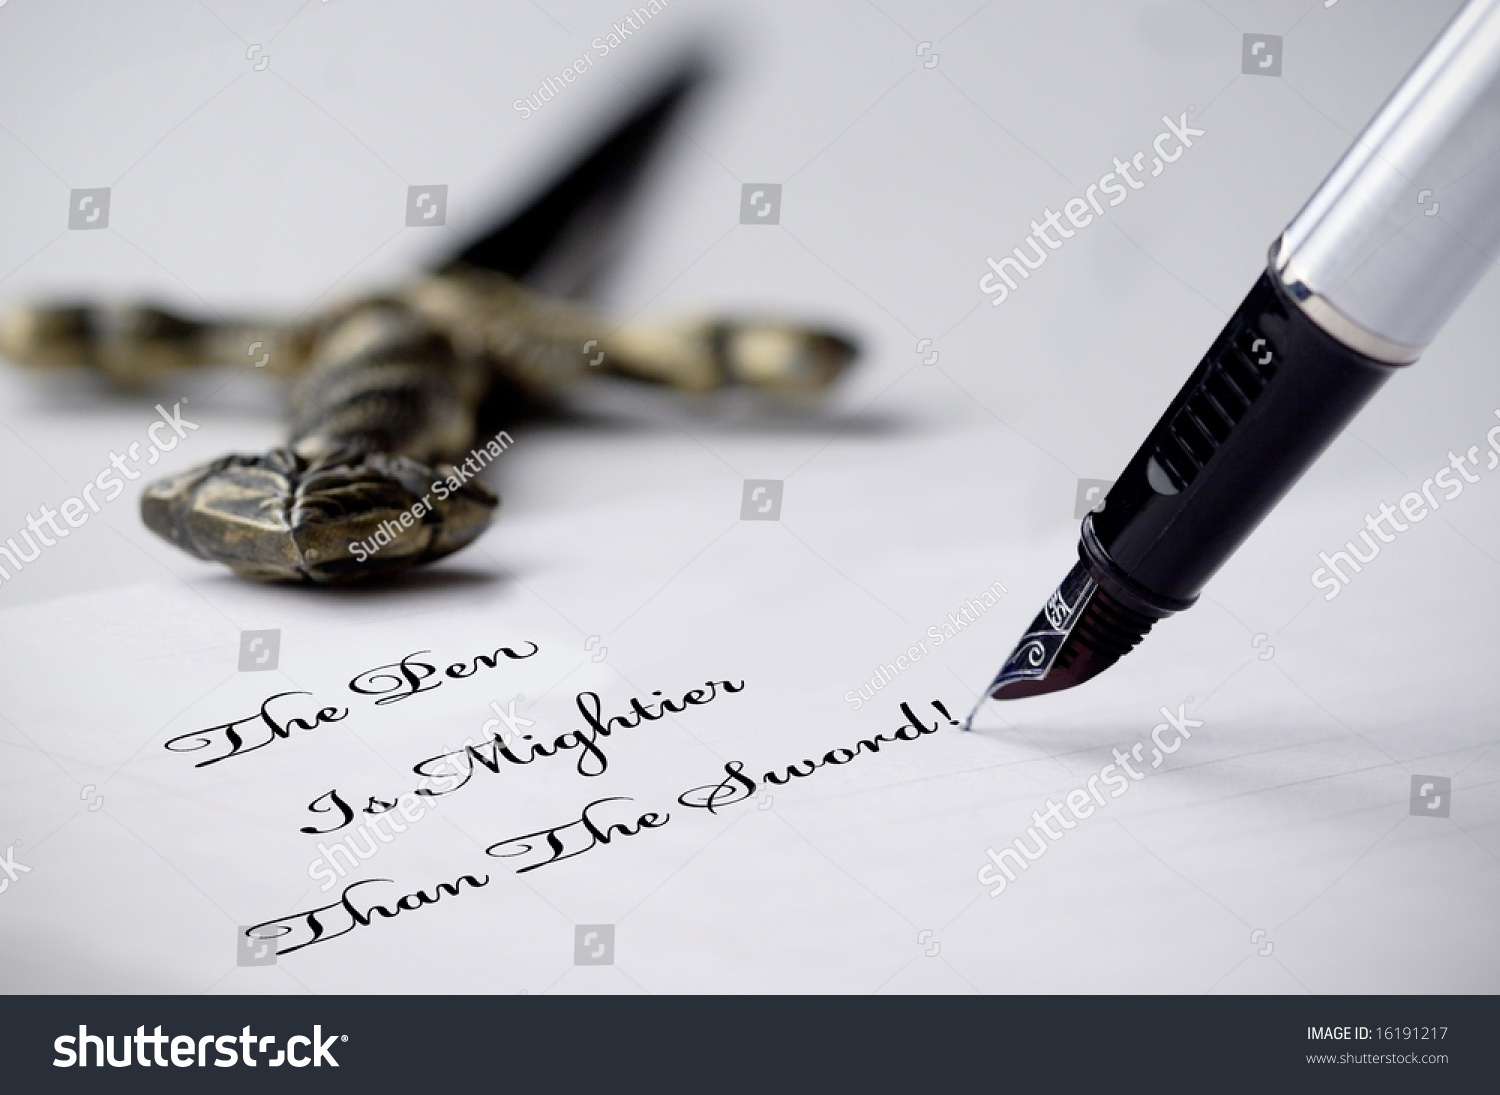 an essay on pen is mightier than sword